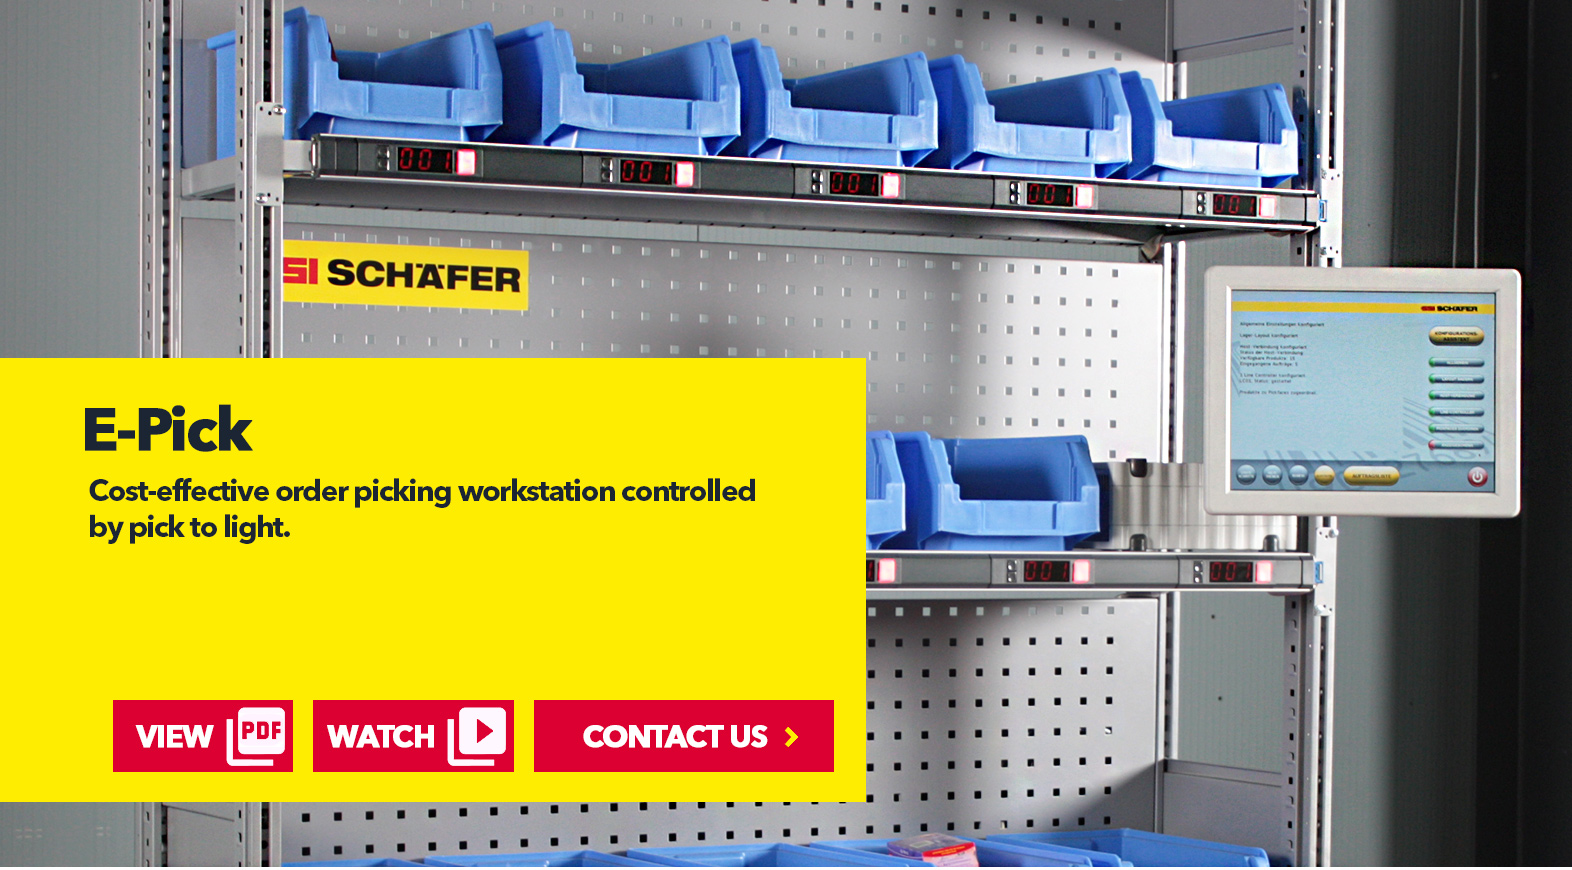 Picking ePick by SSI Schaefer USA Download Guide, Watch Video, Contact Us. www.chaefershelving.com